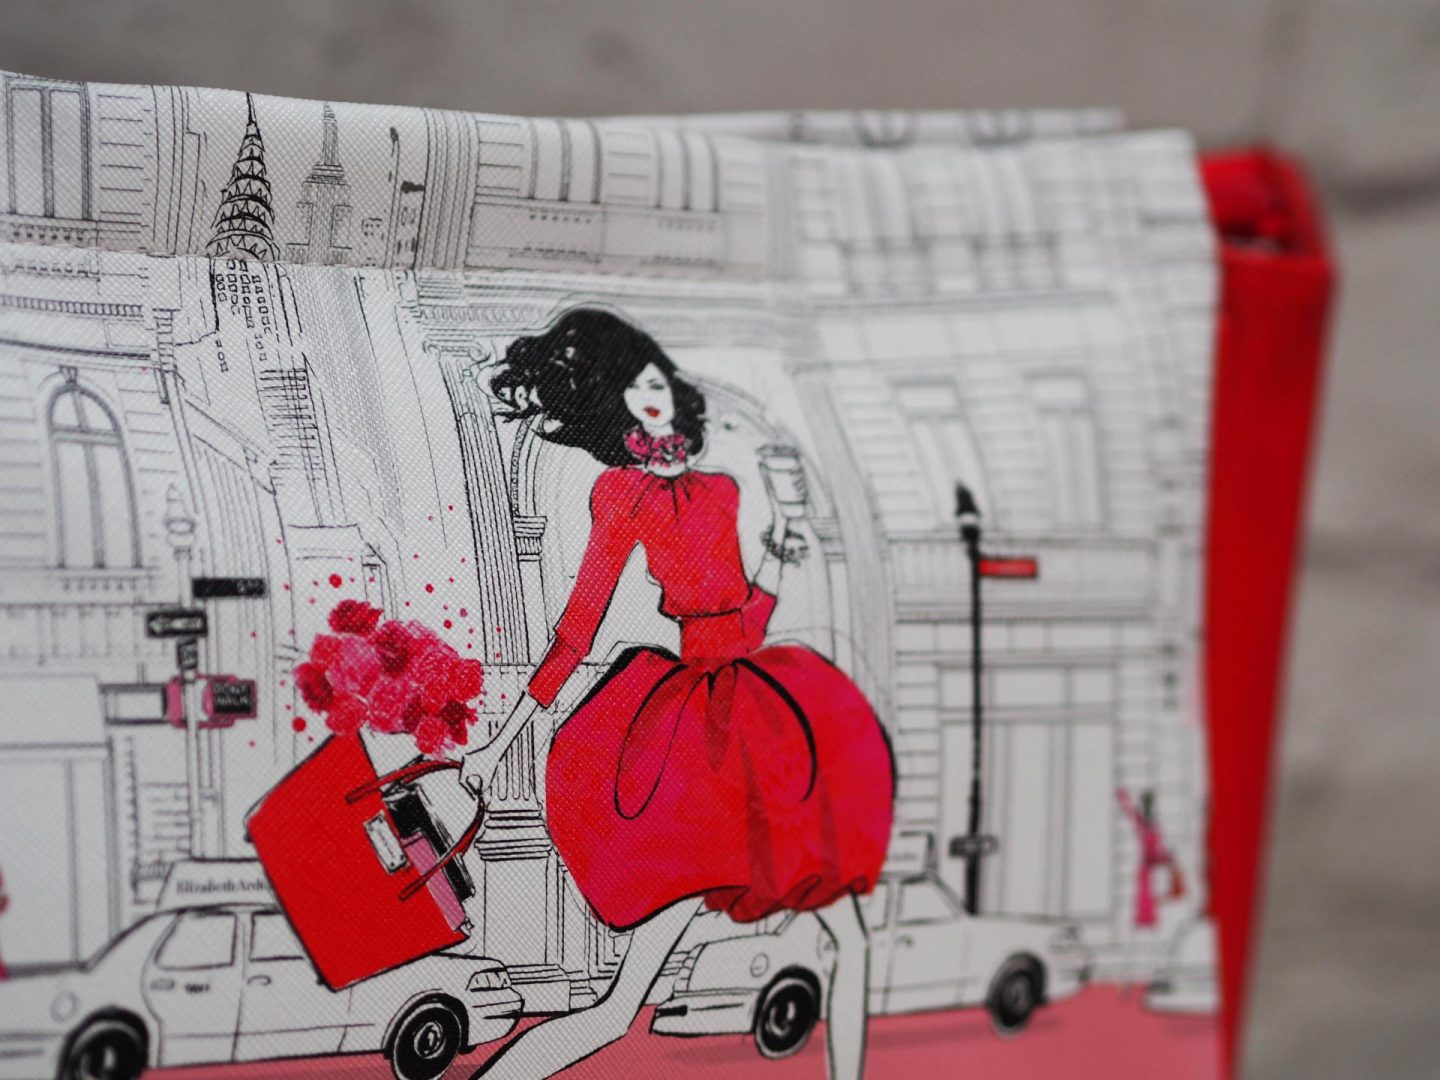 elizabeth-arden-free-gift-with-purchase-at-house-of-fraser-rachel-nicole-uk-blogger-5